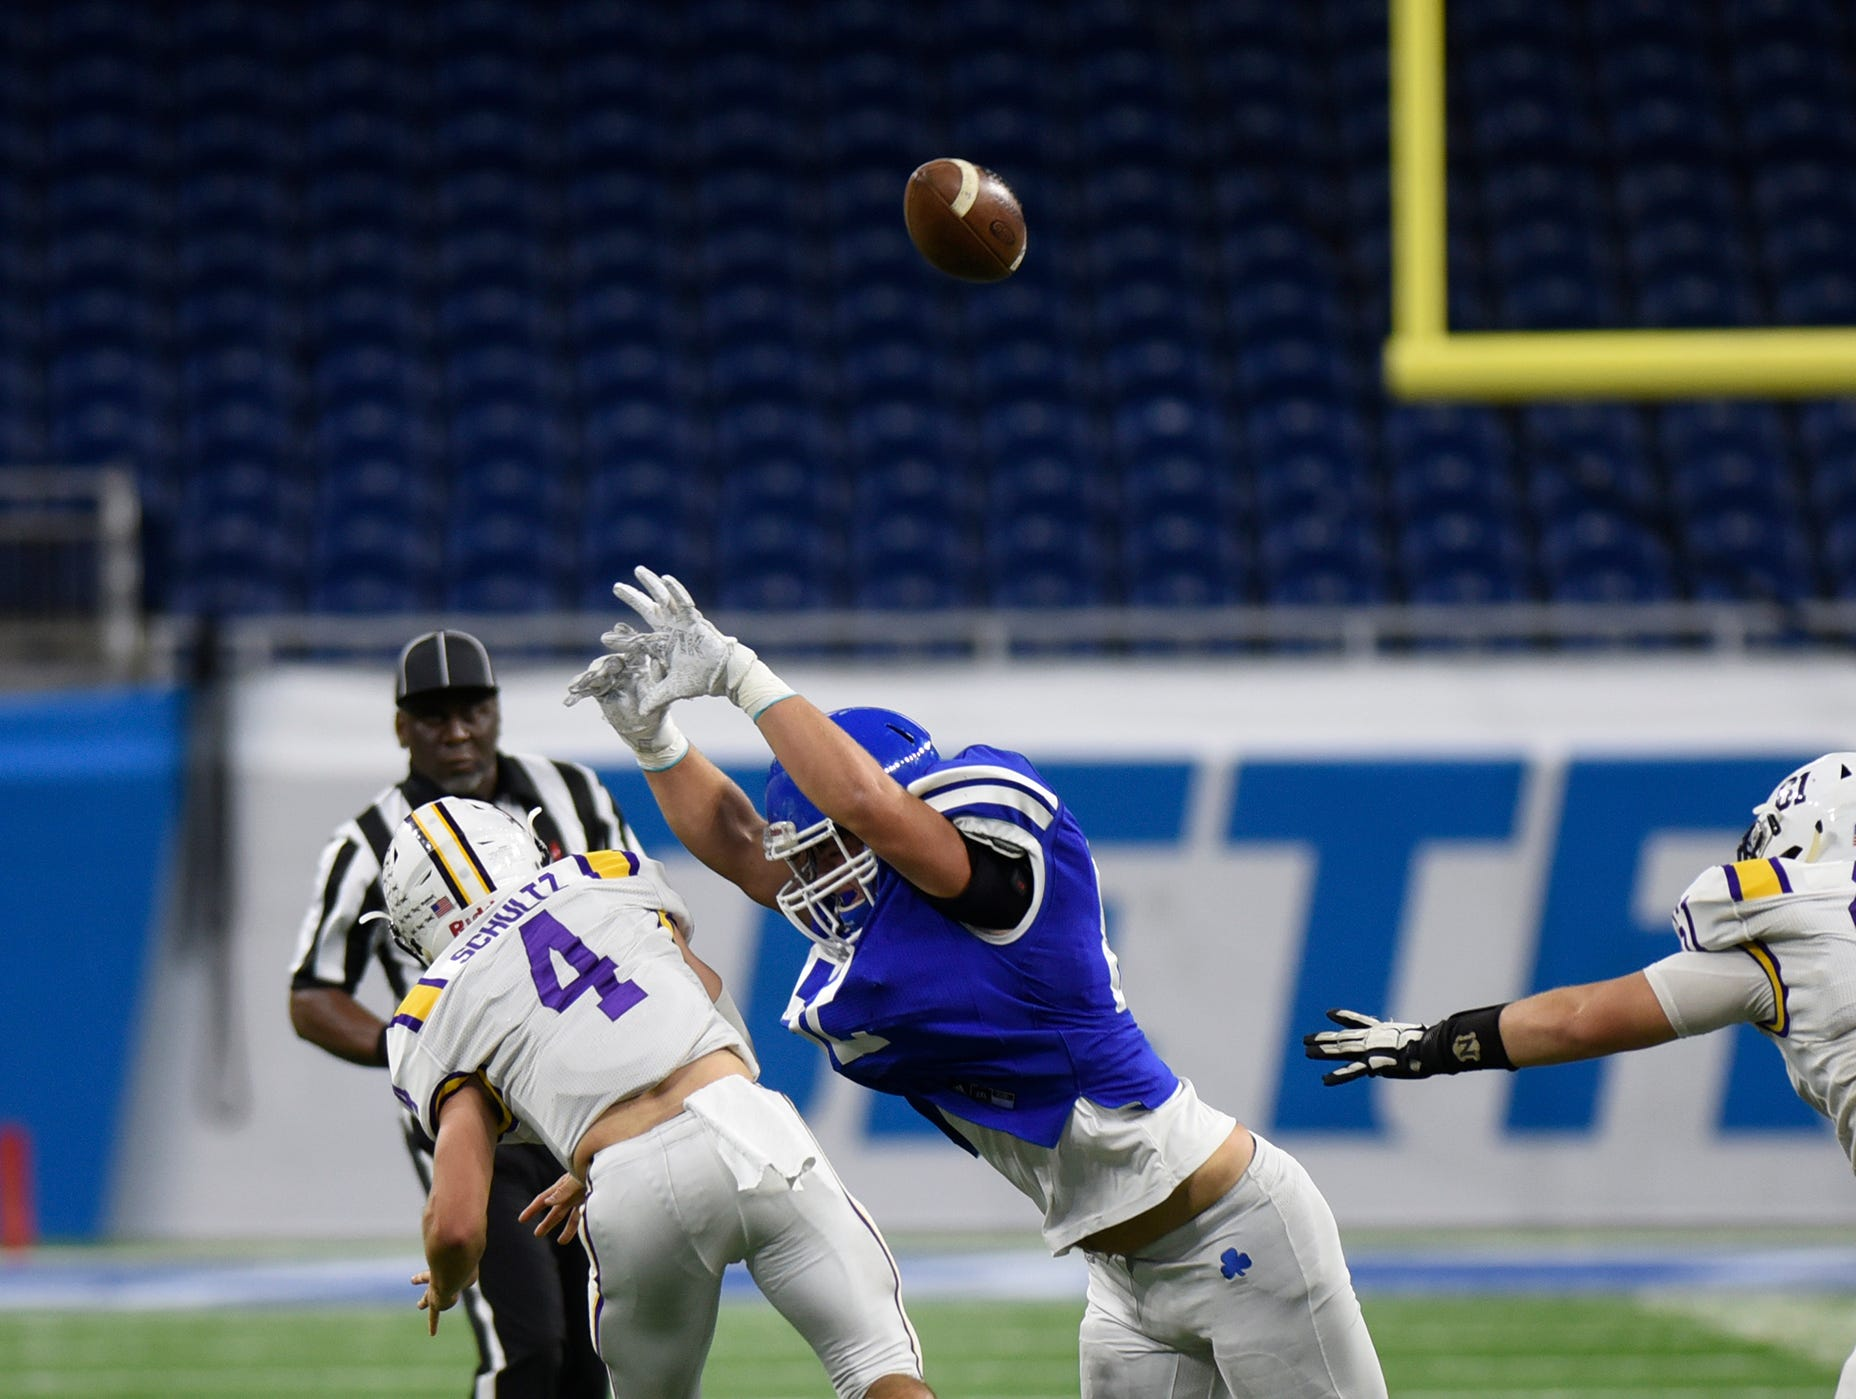 Warren De La Salle quarterback Nolan Schultz (4) gets a pass away just before DCC defenders move in during the Catholic League Prep Bowl AB Division championship game at Ford Field Oct. 20, 2018.